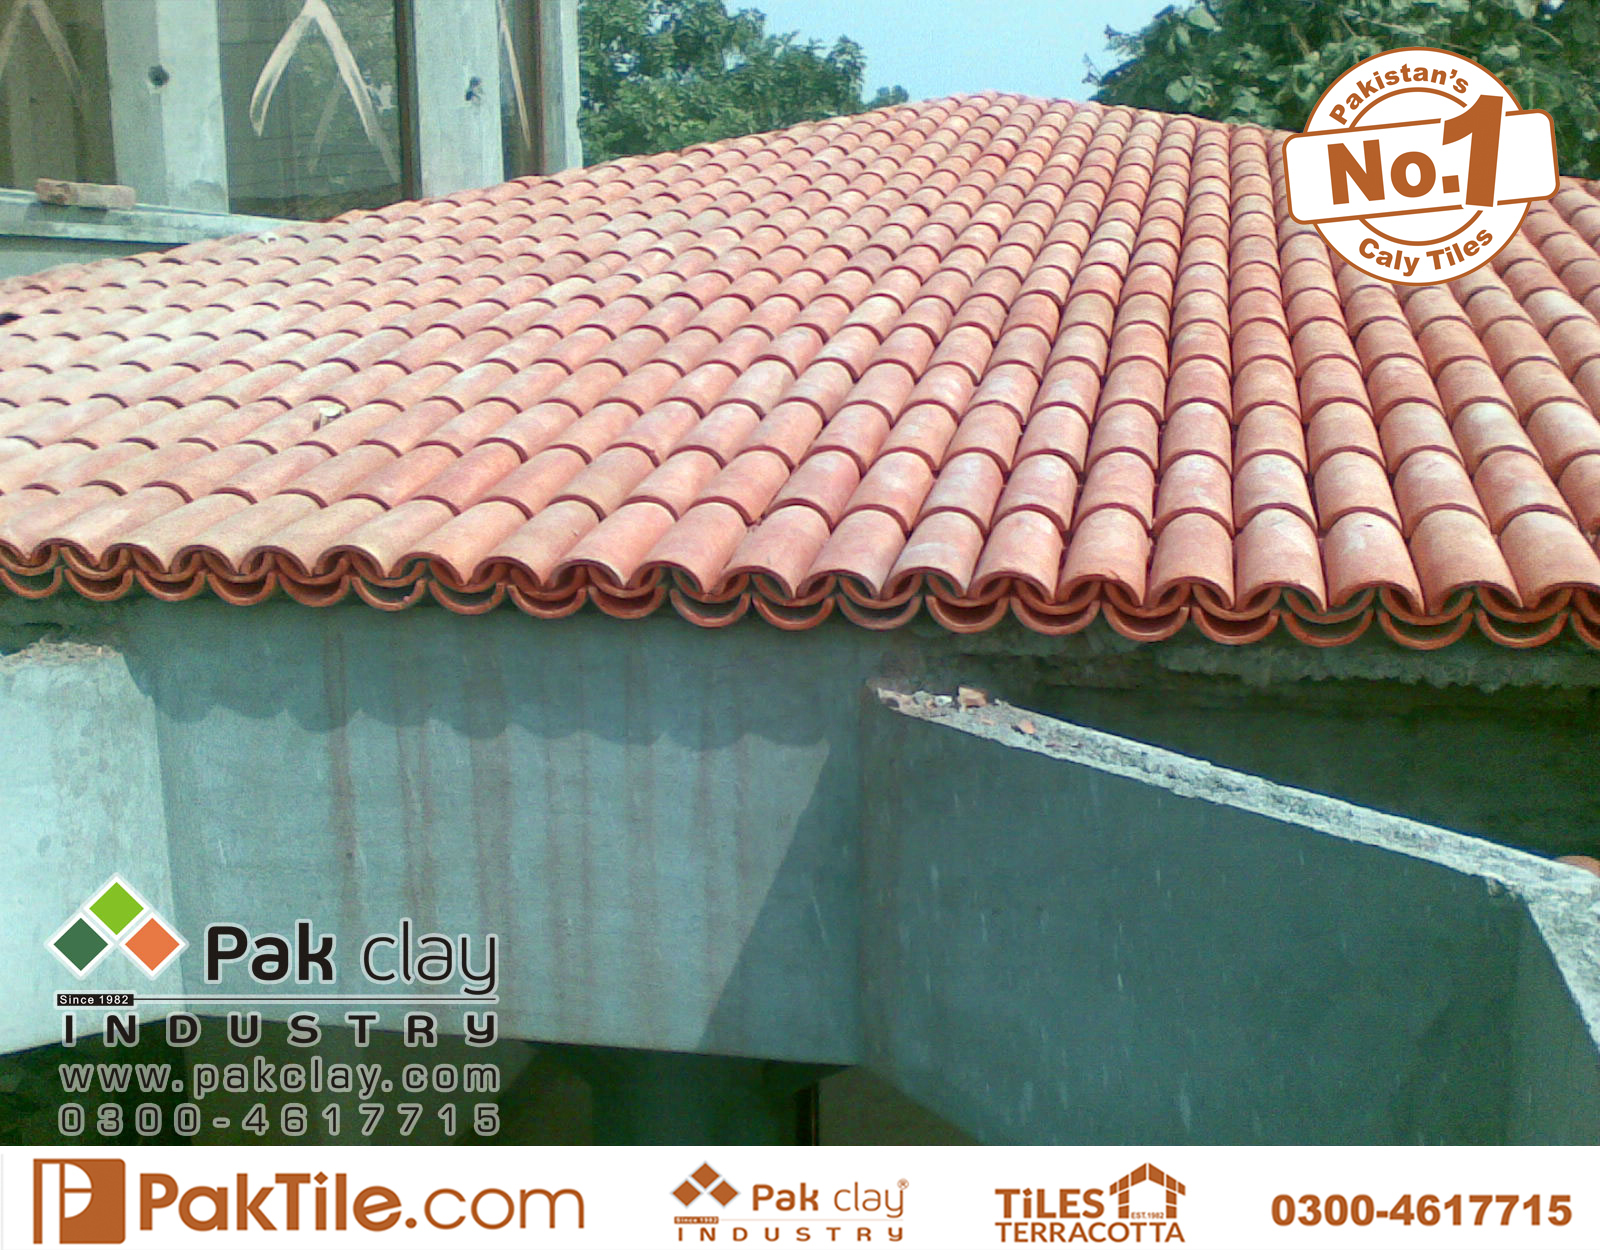 Pak clay khaprail tiles design flat clay roof tile installation terracotta tiles for sale near me lahore